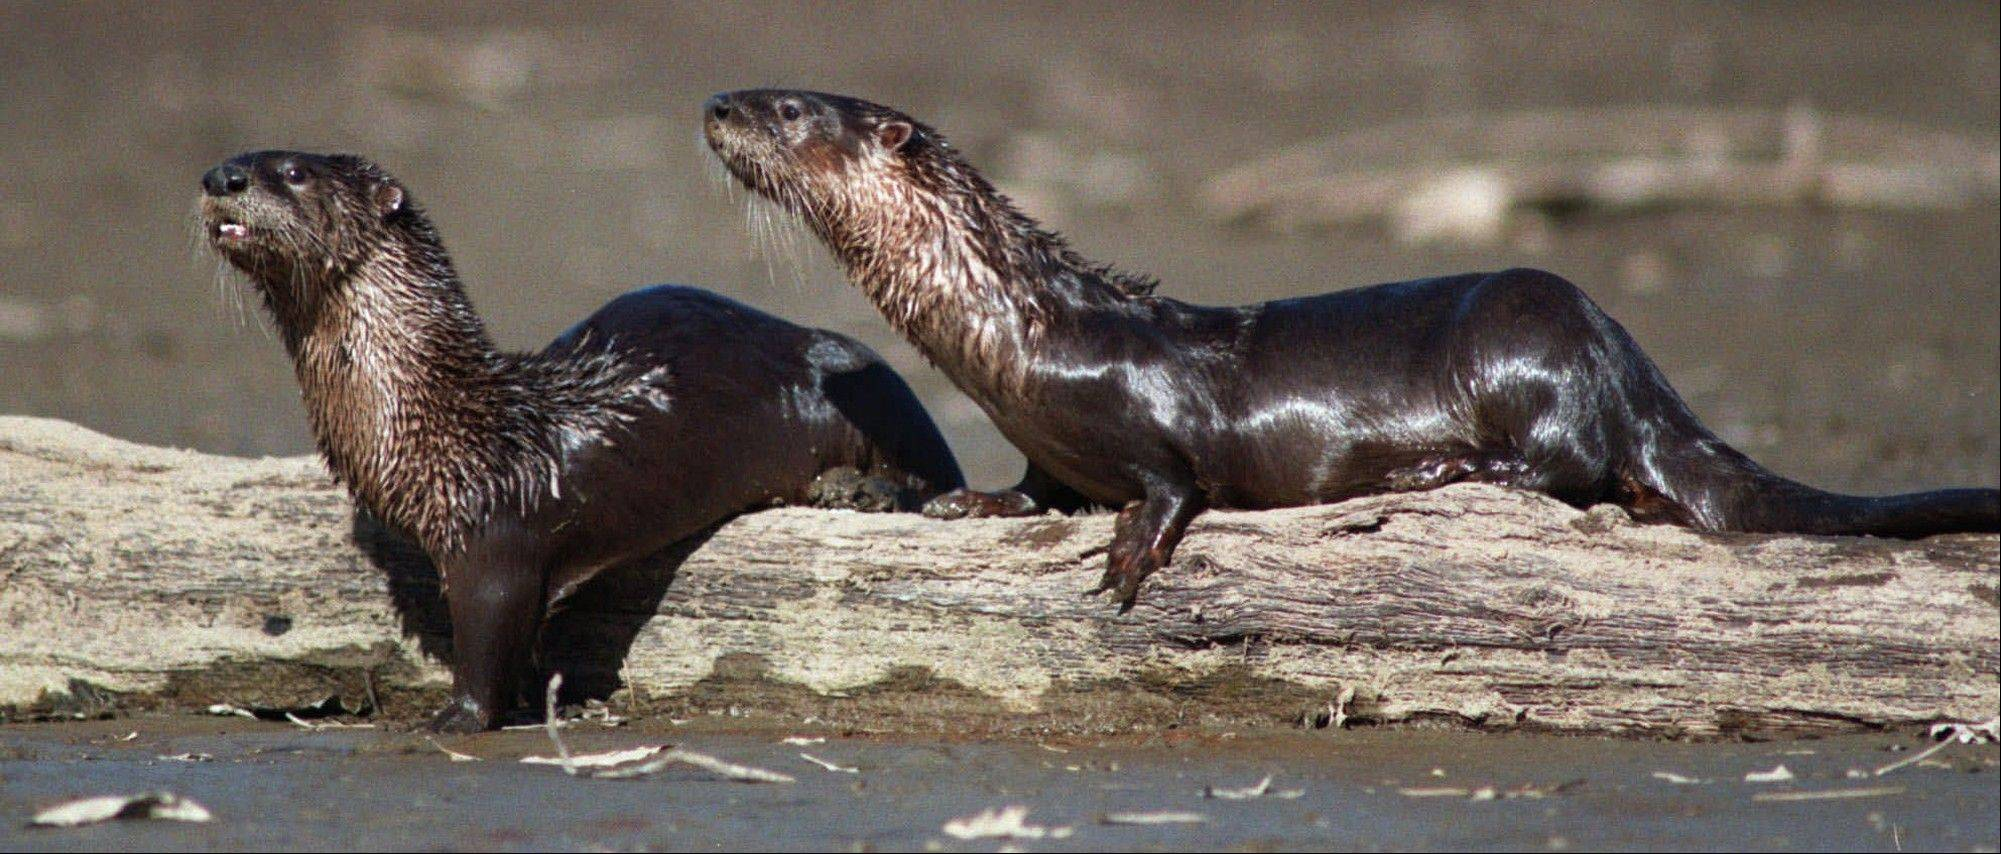 The state legislature allowed last year, for the first time, a highly regulated river otter trapping season.